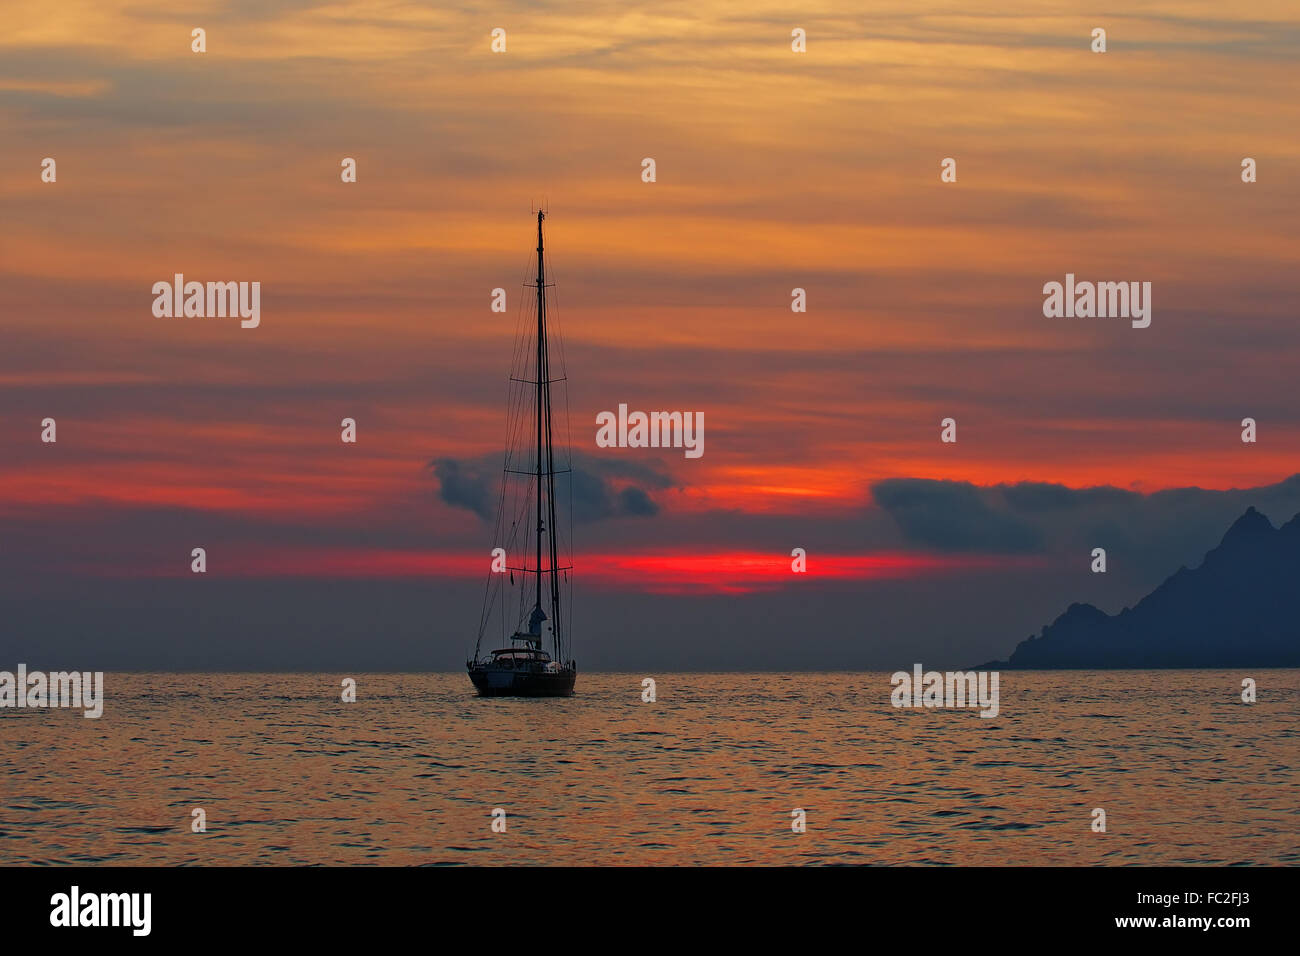 Sailing yacht in the sunset - Corsica - Stock Image